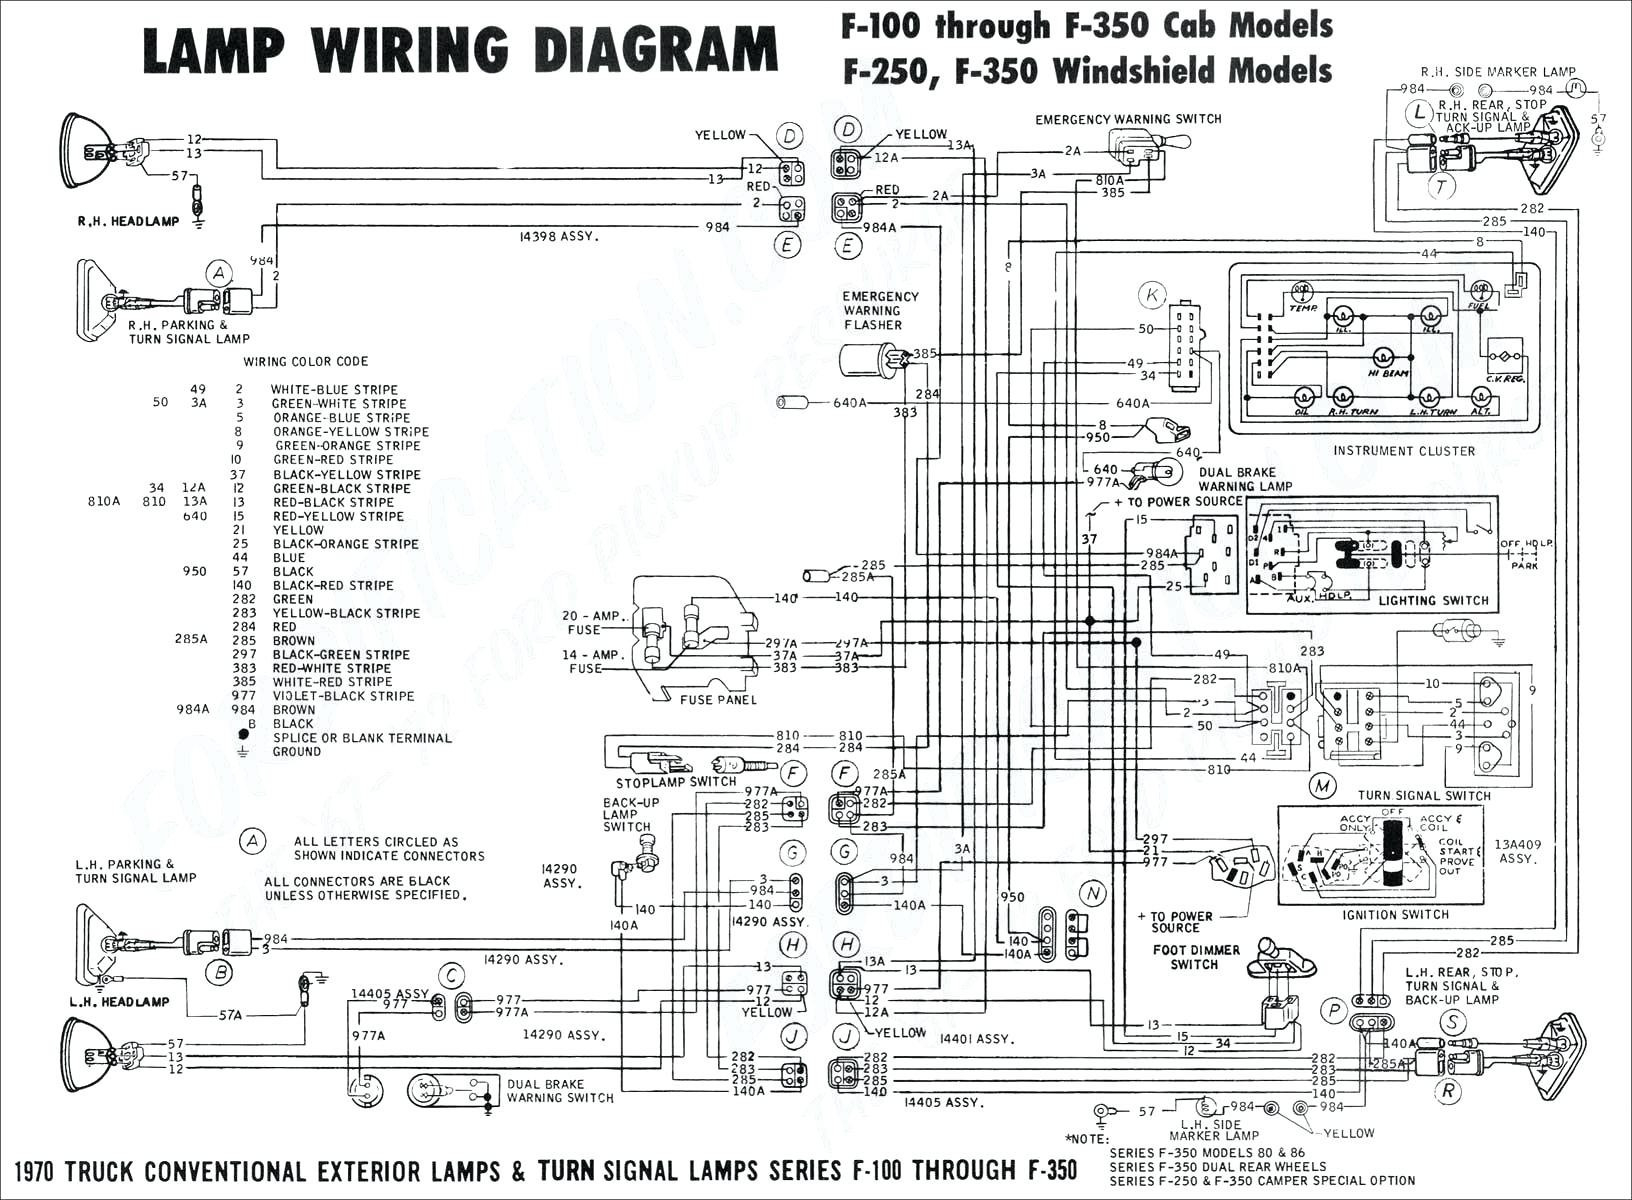 2010 Flex Wiring Diagram Experts Of Fan Light Switch Largest Database U2022 Rh Georgebartlett Co Cooling A Lite Electric Relay